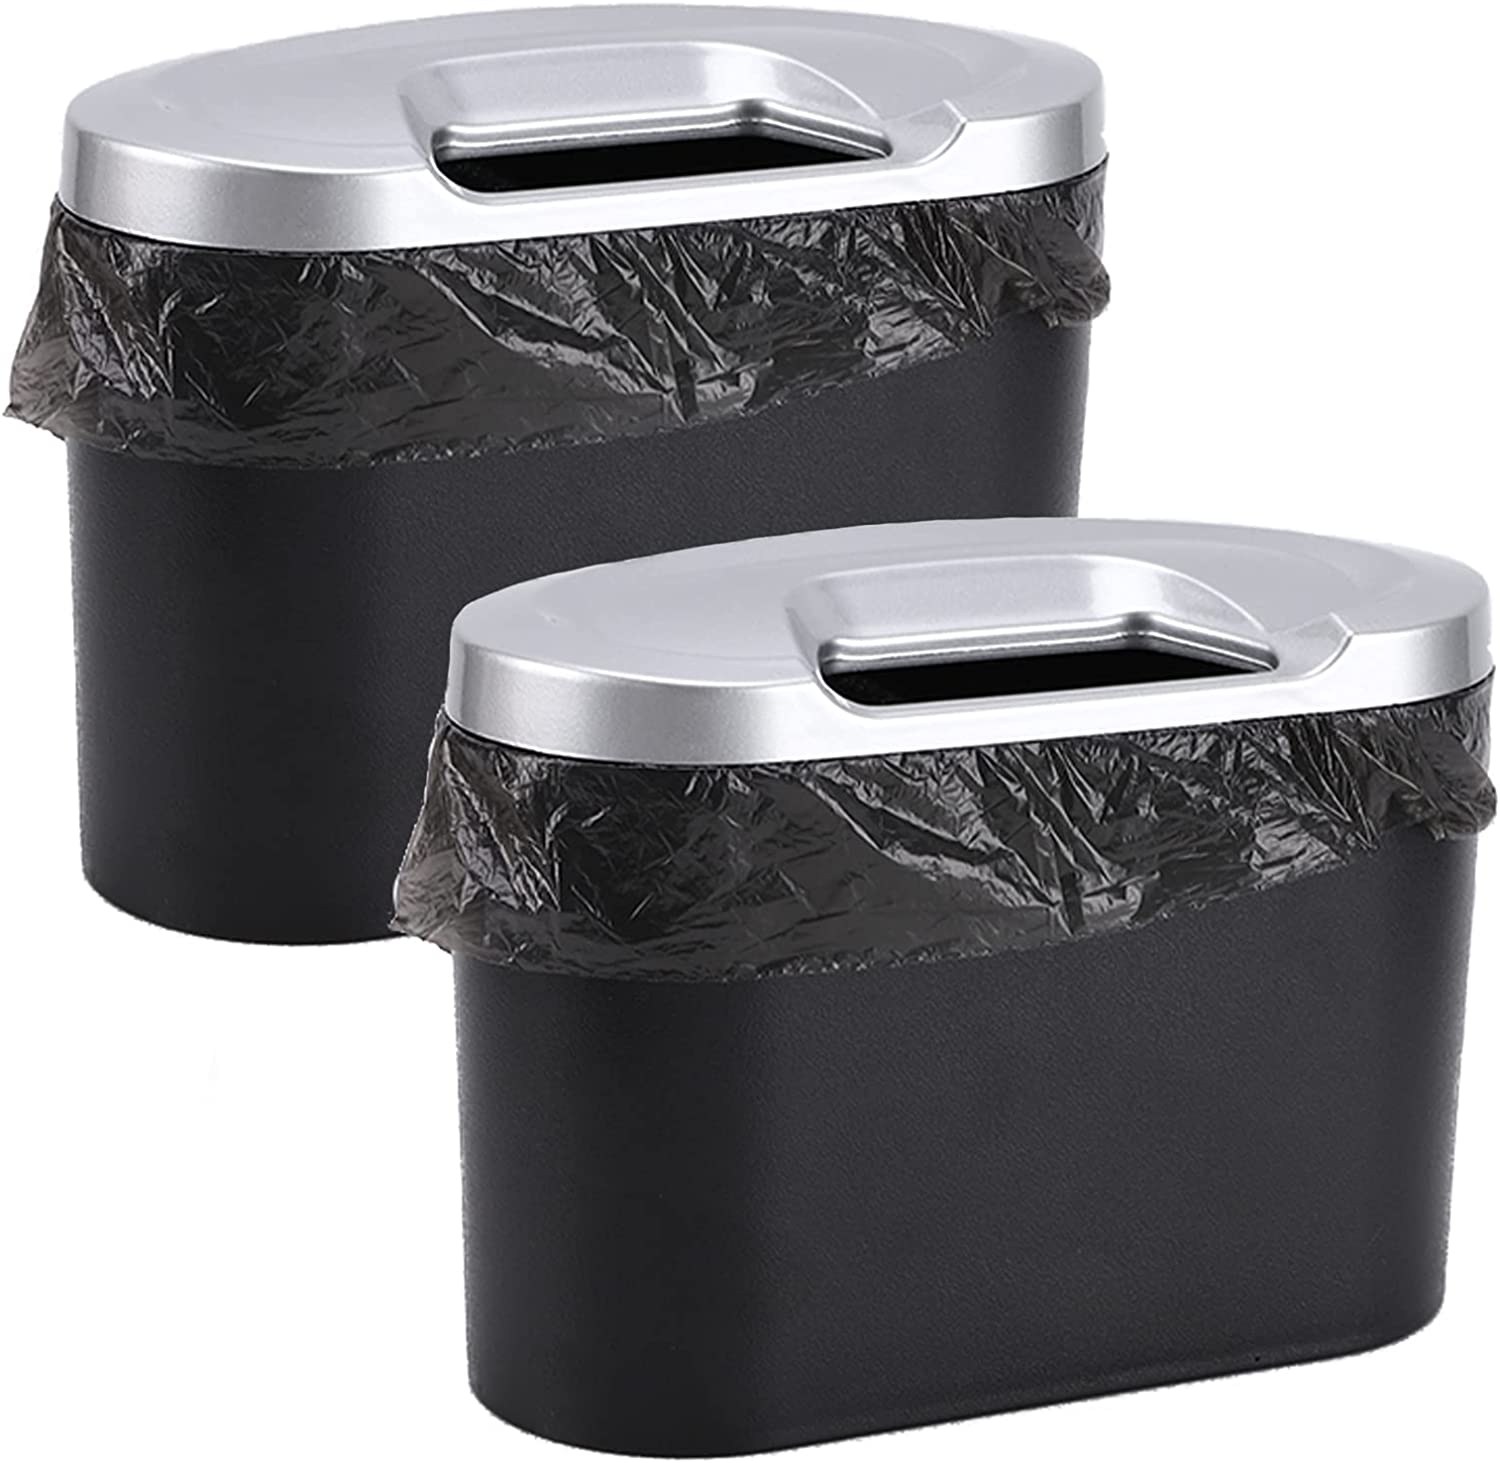 Accmor Car Tulsa Mall Garbage Can Max 71% OFF Mini Dust with Lid Trash Vehicle